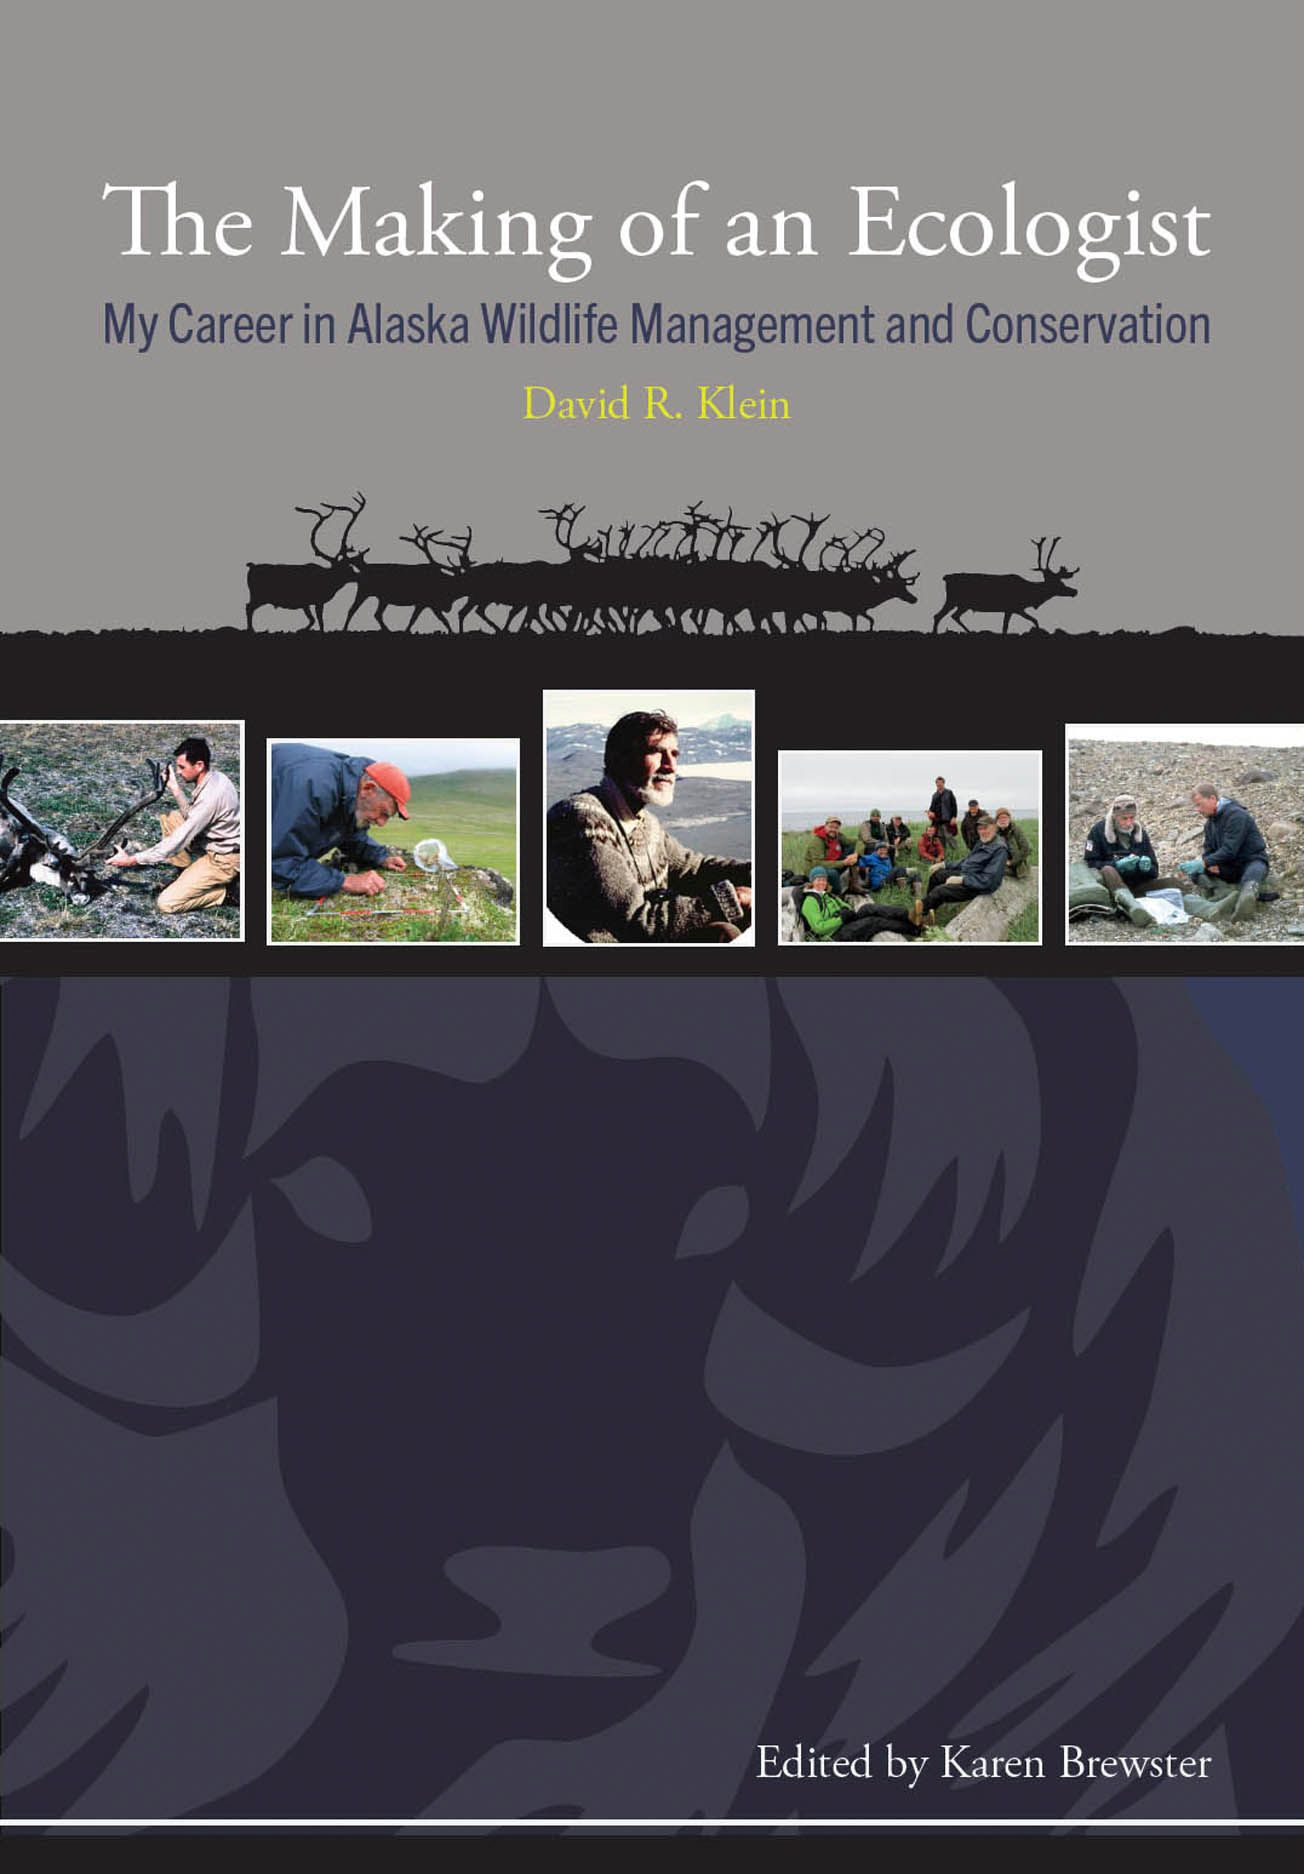 The Making of an Ecologist: My Career in Alaska Wildlife Management and Conservation